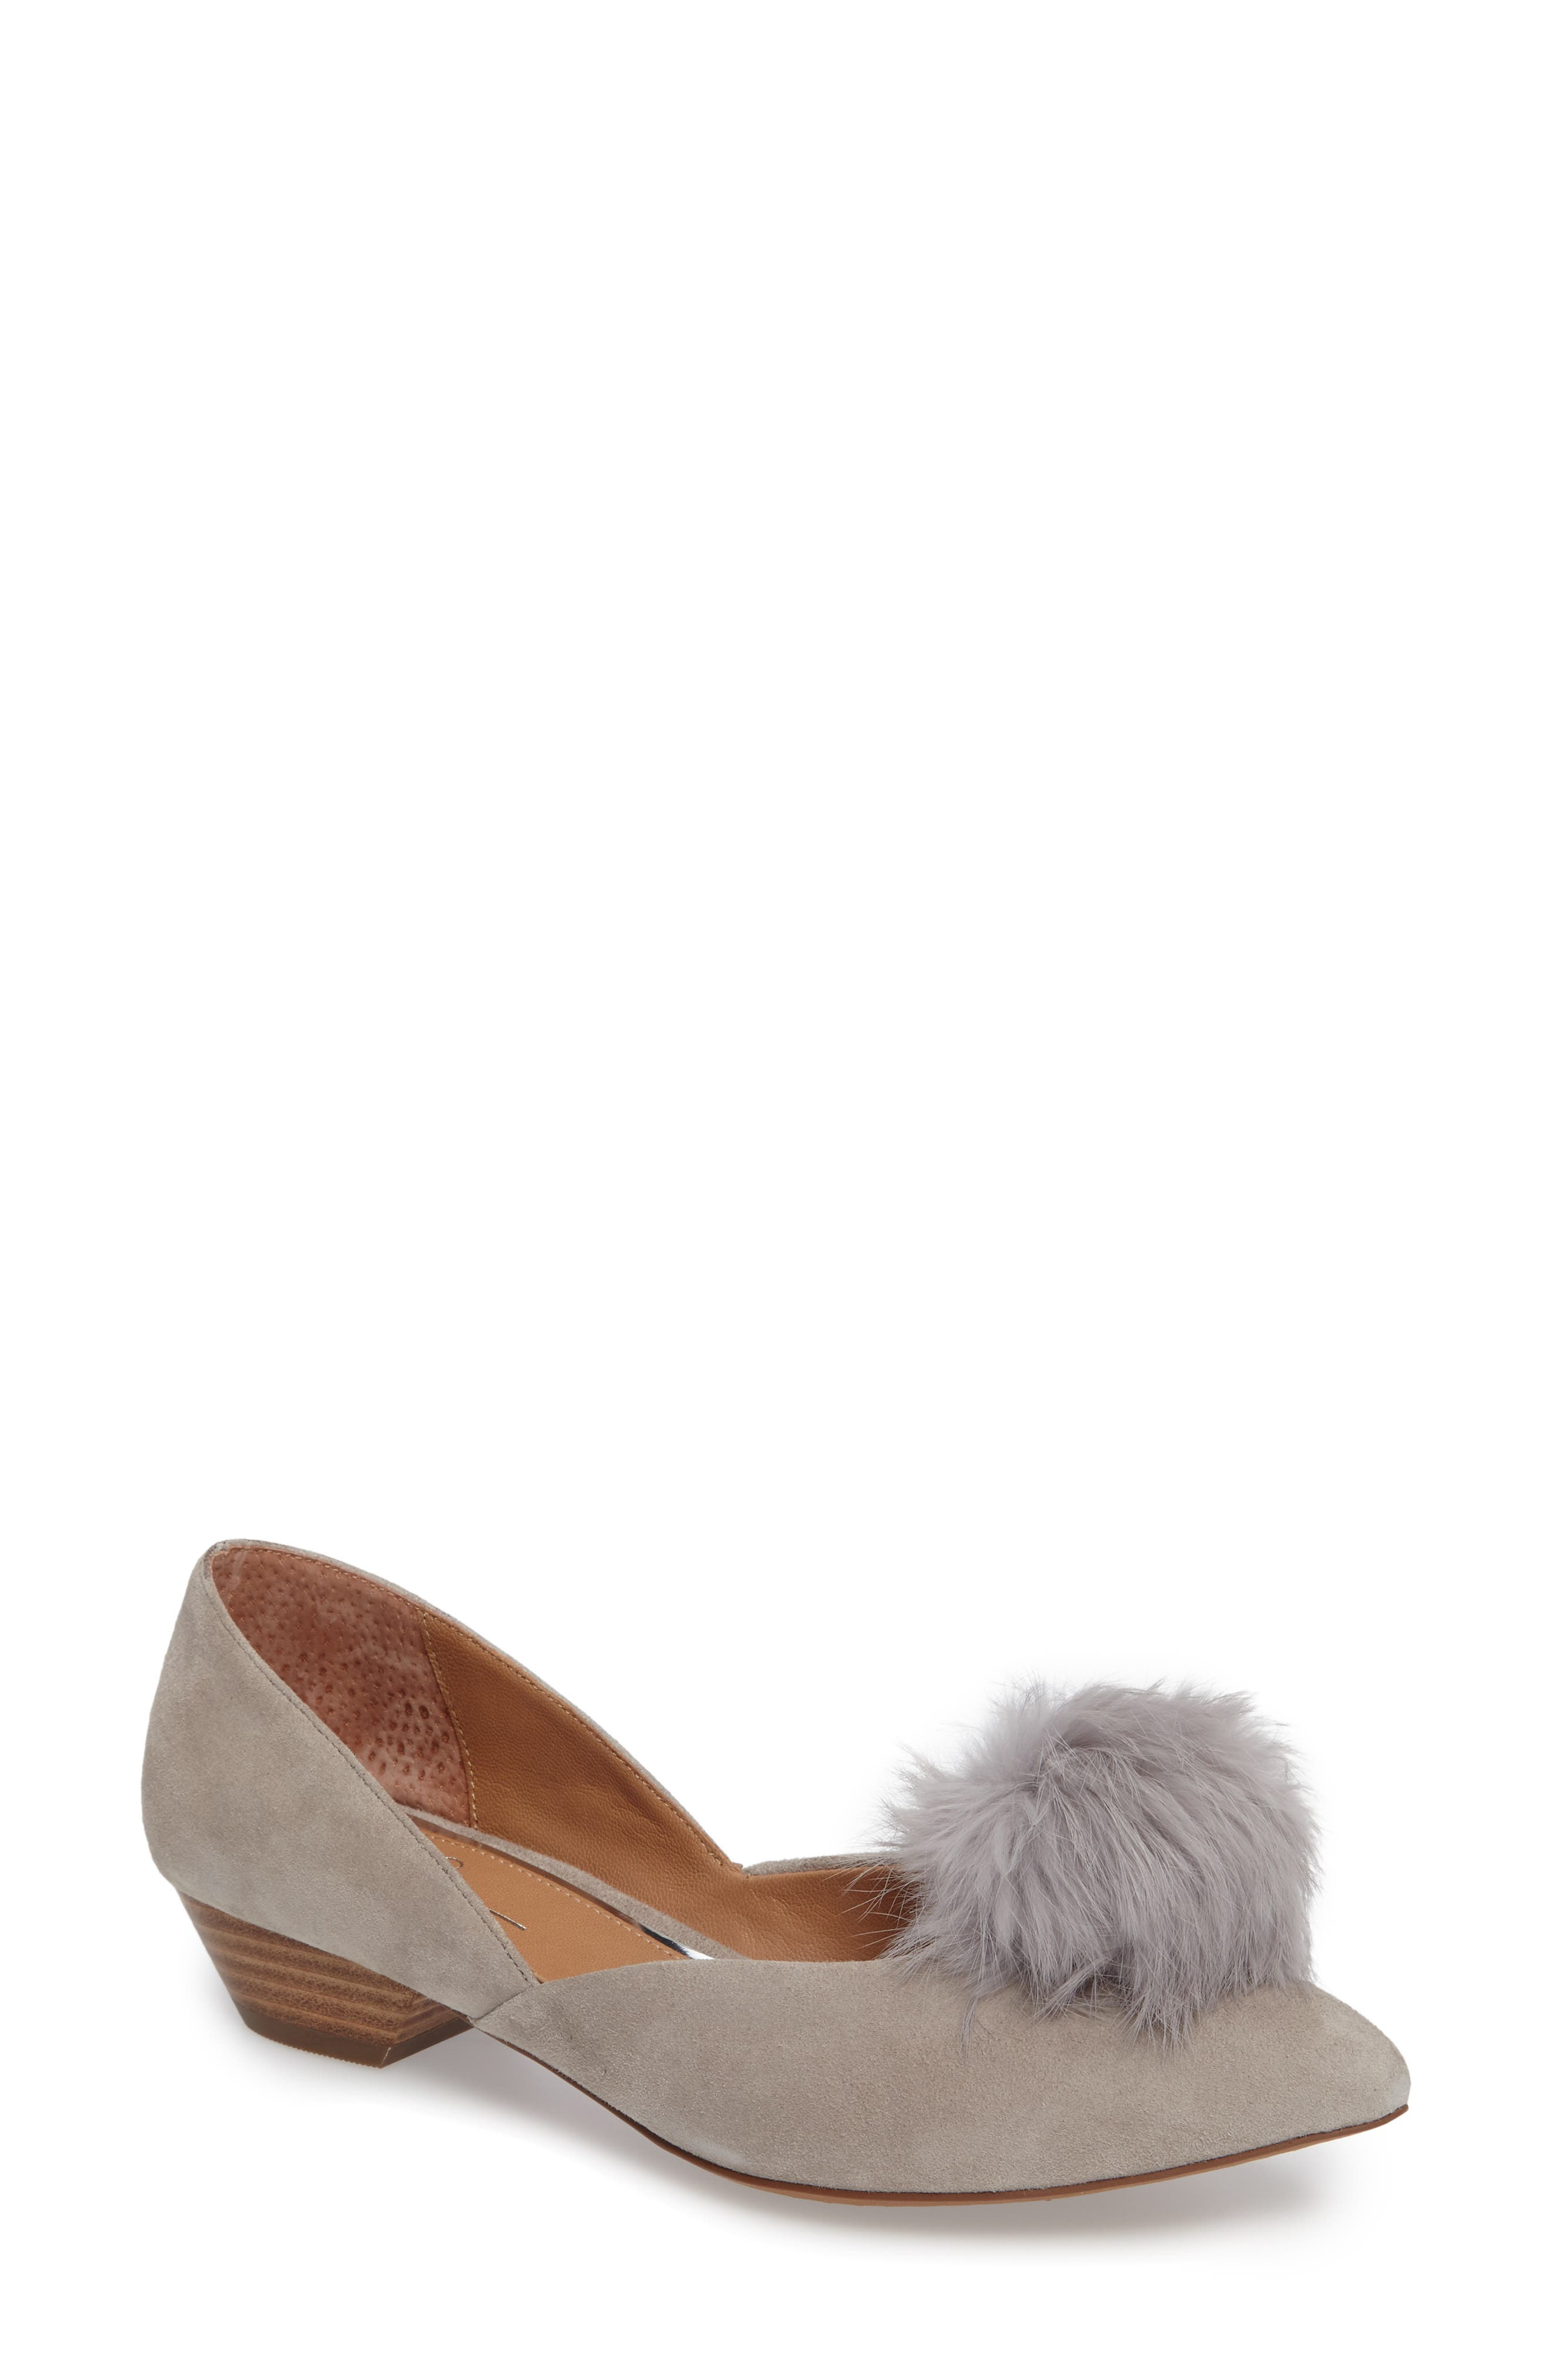 Main Image - Linea Paolo Camille Pump with Genuine Rabbit Fur Pom (Women)